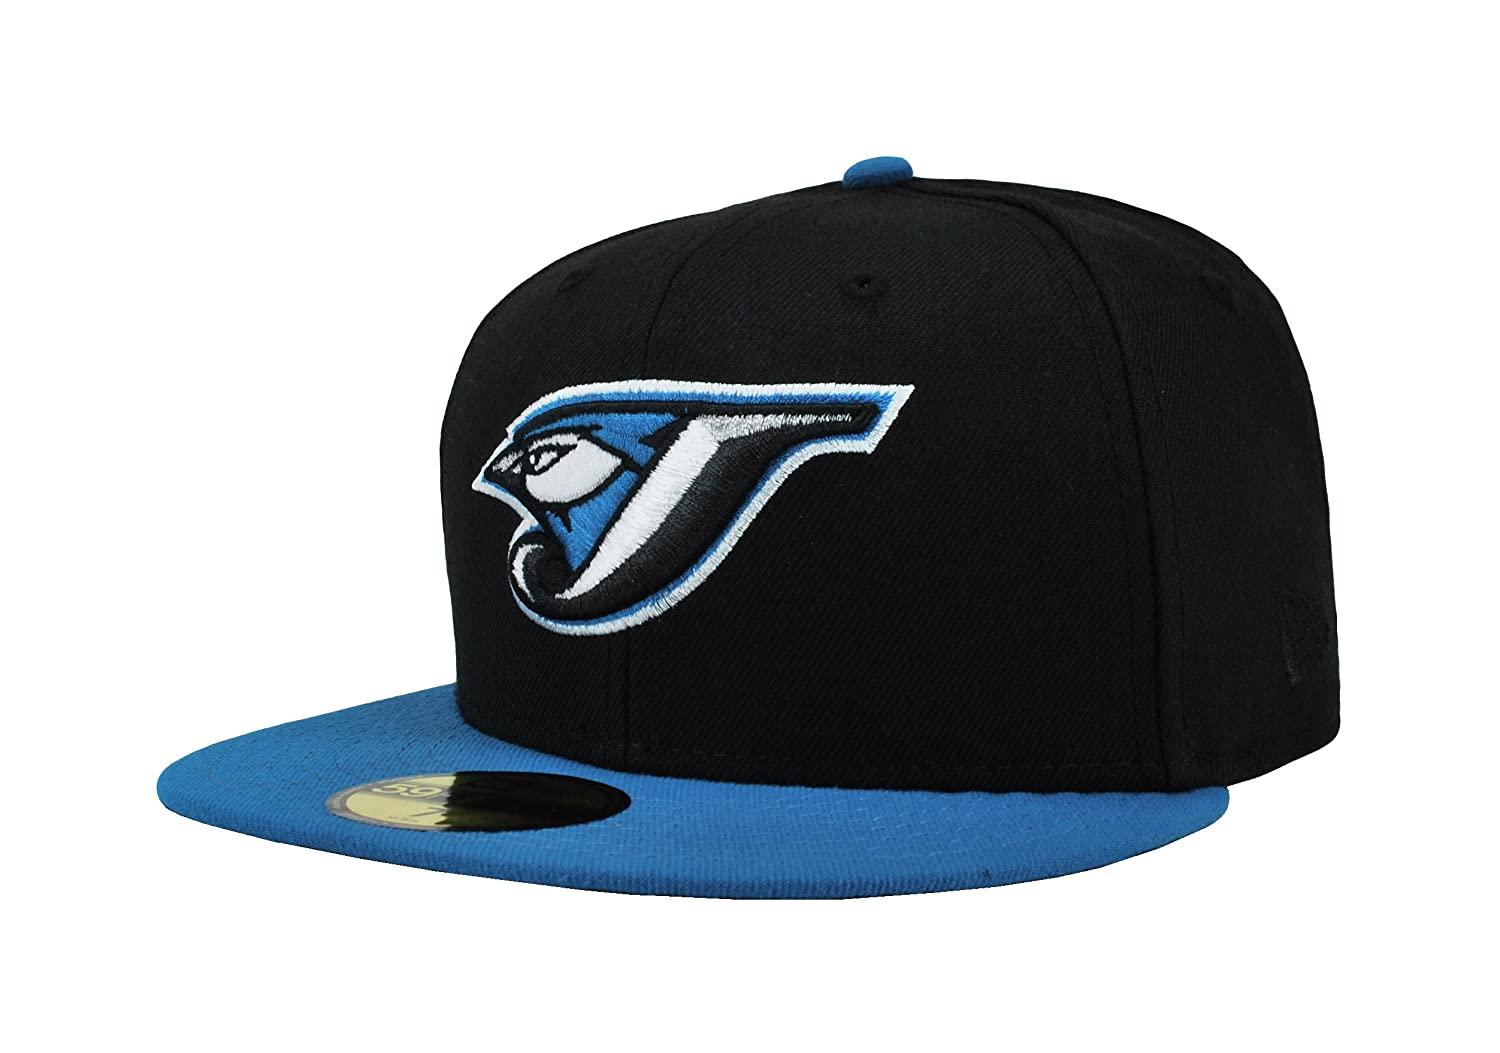 low cost ad674 bf401 ... official store new era 59fifty hat mlb toronto blue jays black cardinal  blue fitted cap at